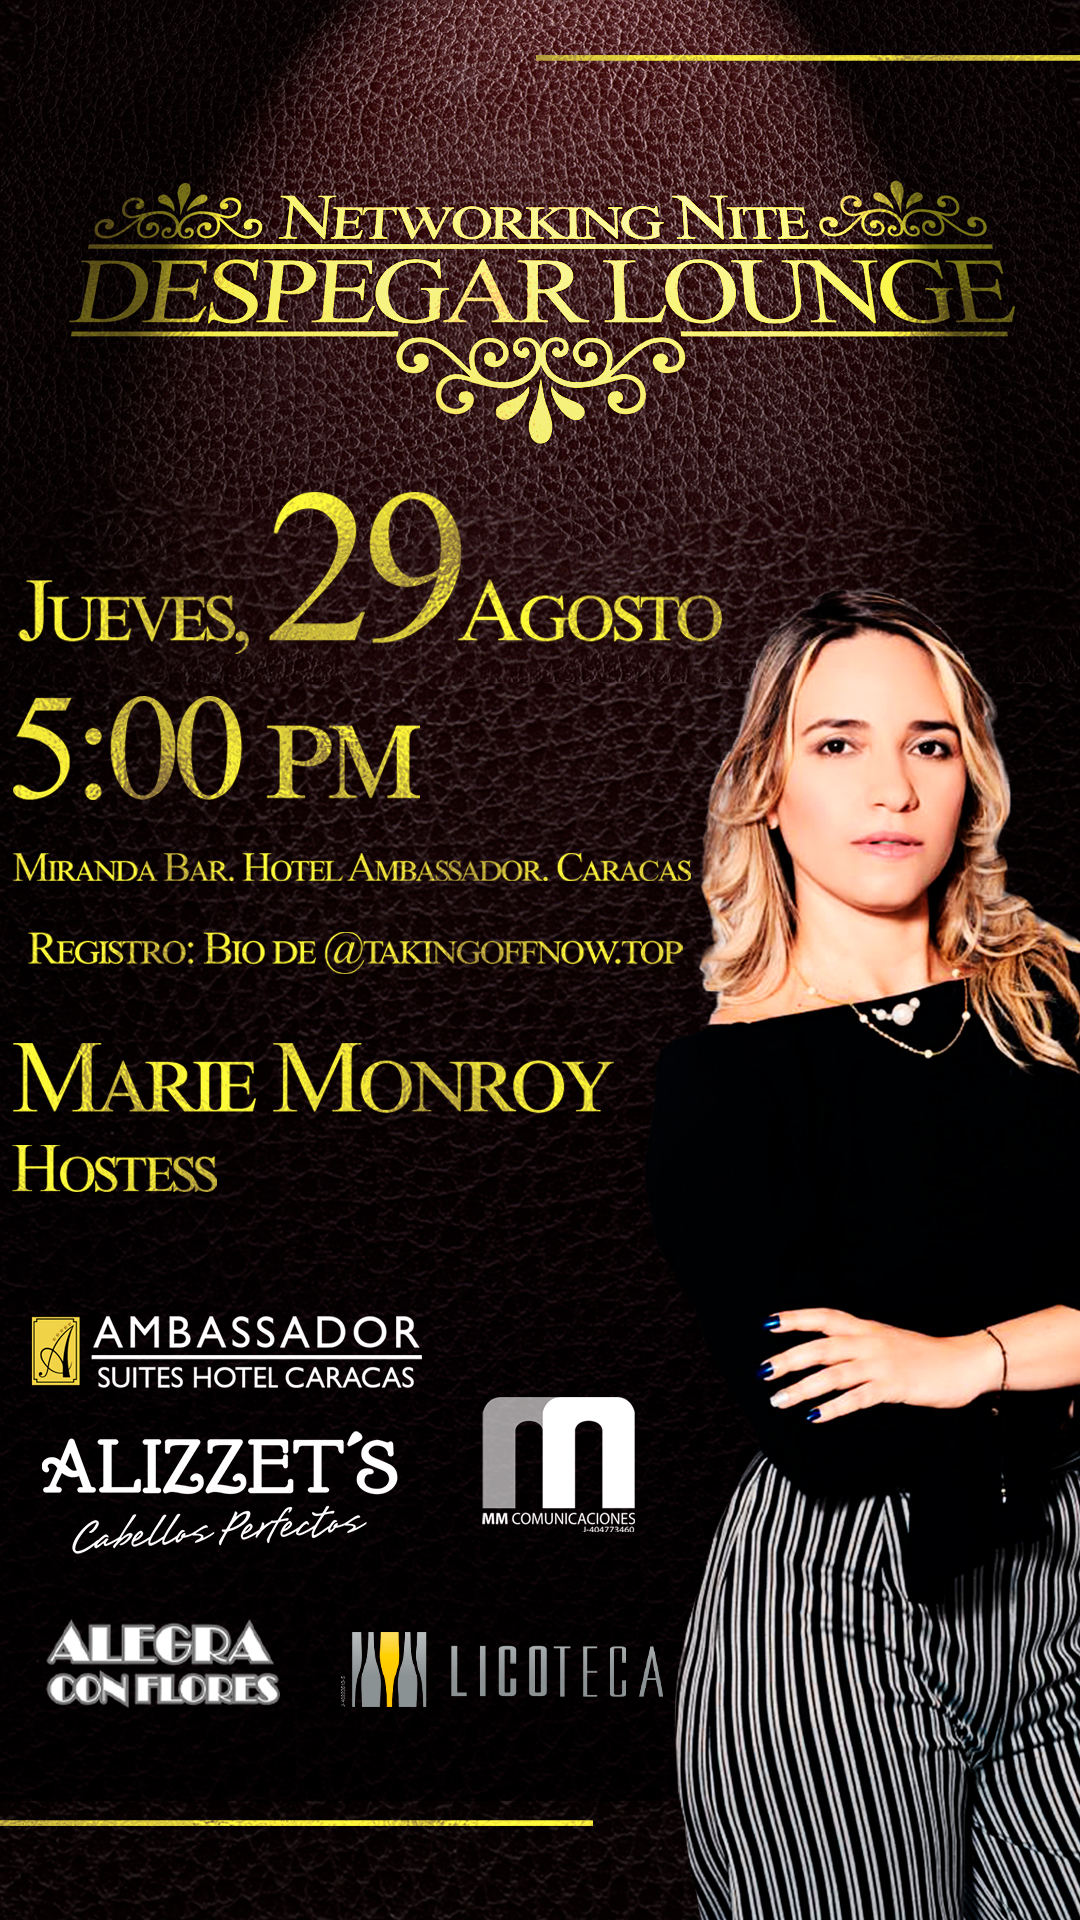 Despegar Lounge Networking Nite Marie Monroy MM comunica